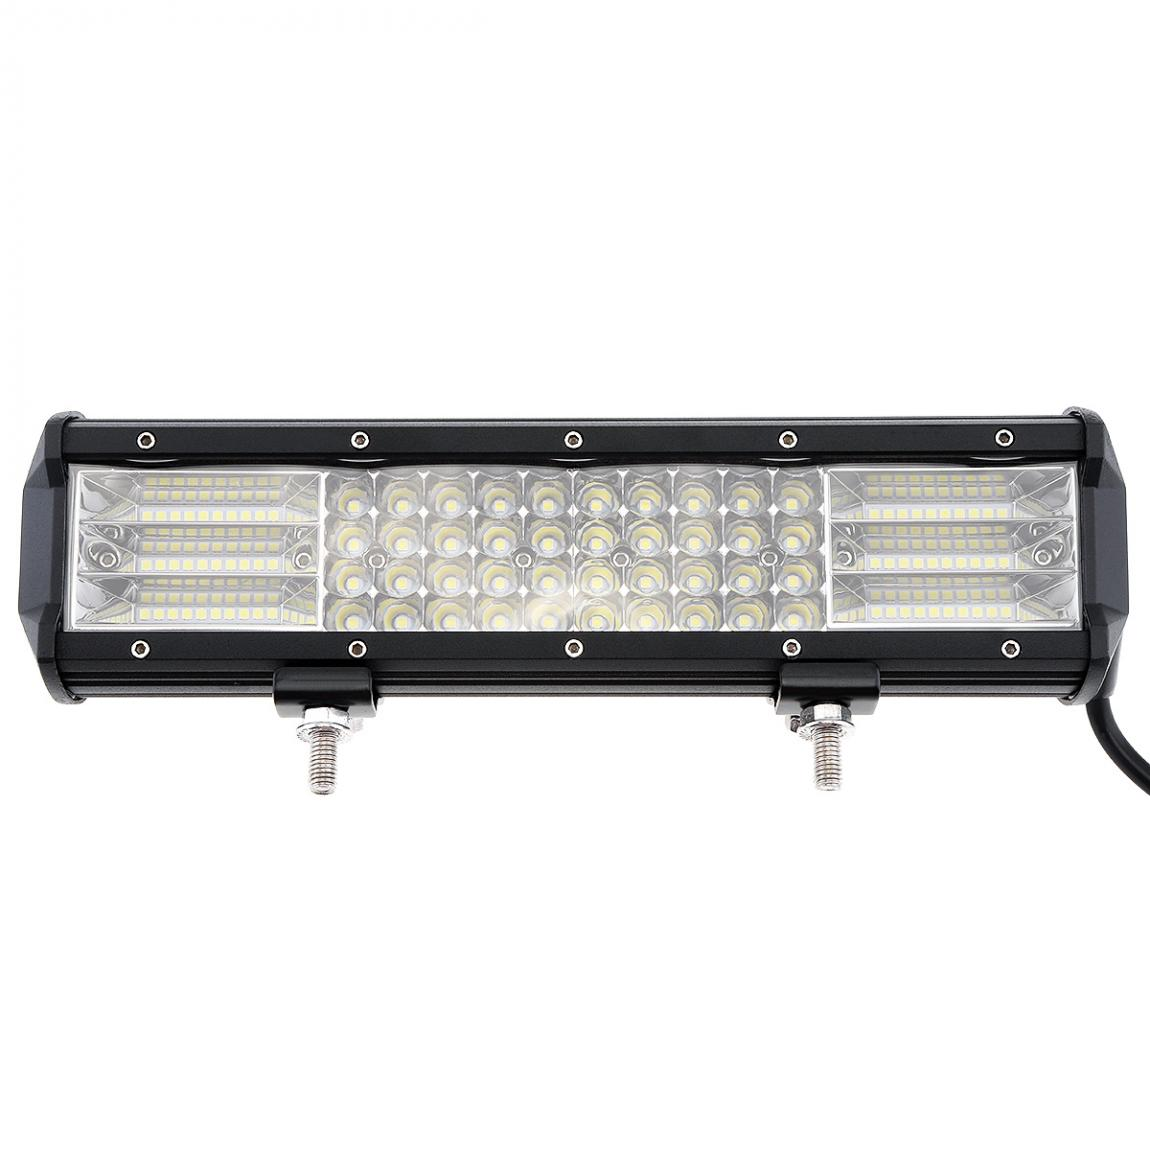 12 Inch 300W 100Pcs LED Strip LED Light Bar Work Light Combo Beam for Driving Offroad Boat Car Tractor Truck 4x4 SUV in Car Headlight Bulbs LED from Automobiles Motorcycles